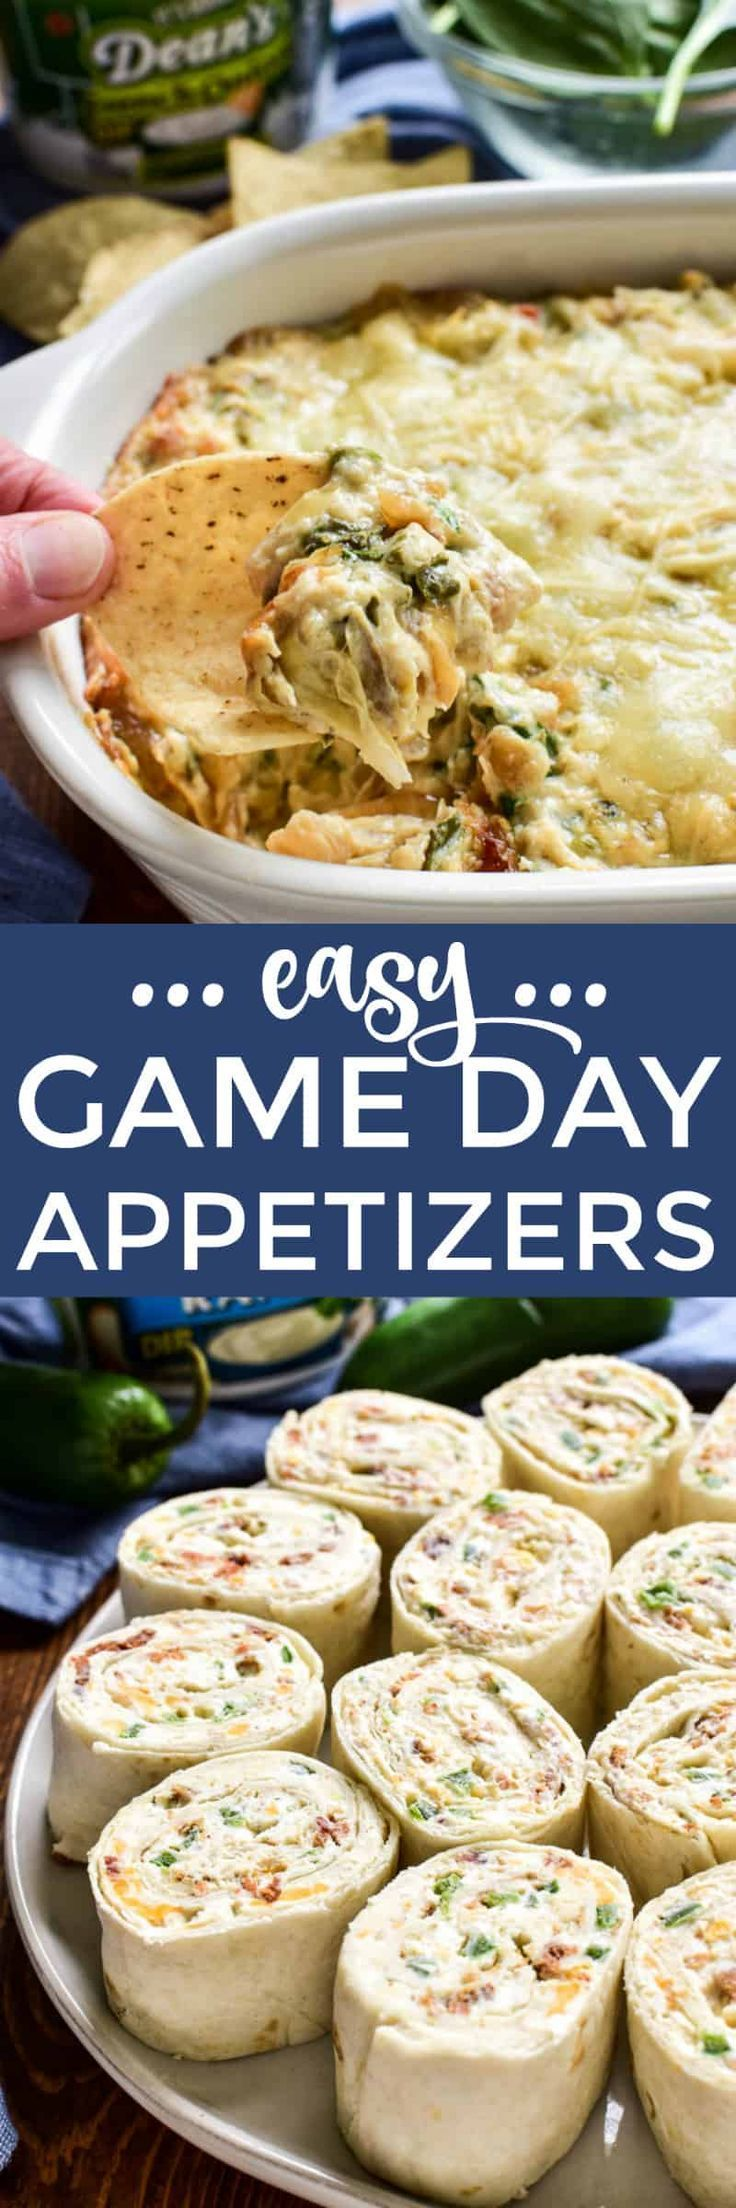 Sponsored These Easy Super Bowl Appetizers Start With Deansdip And Are Packed With The